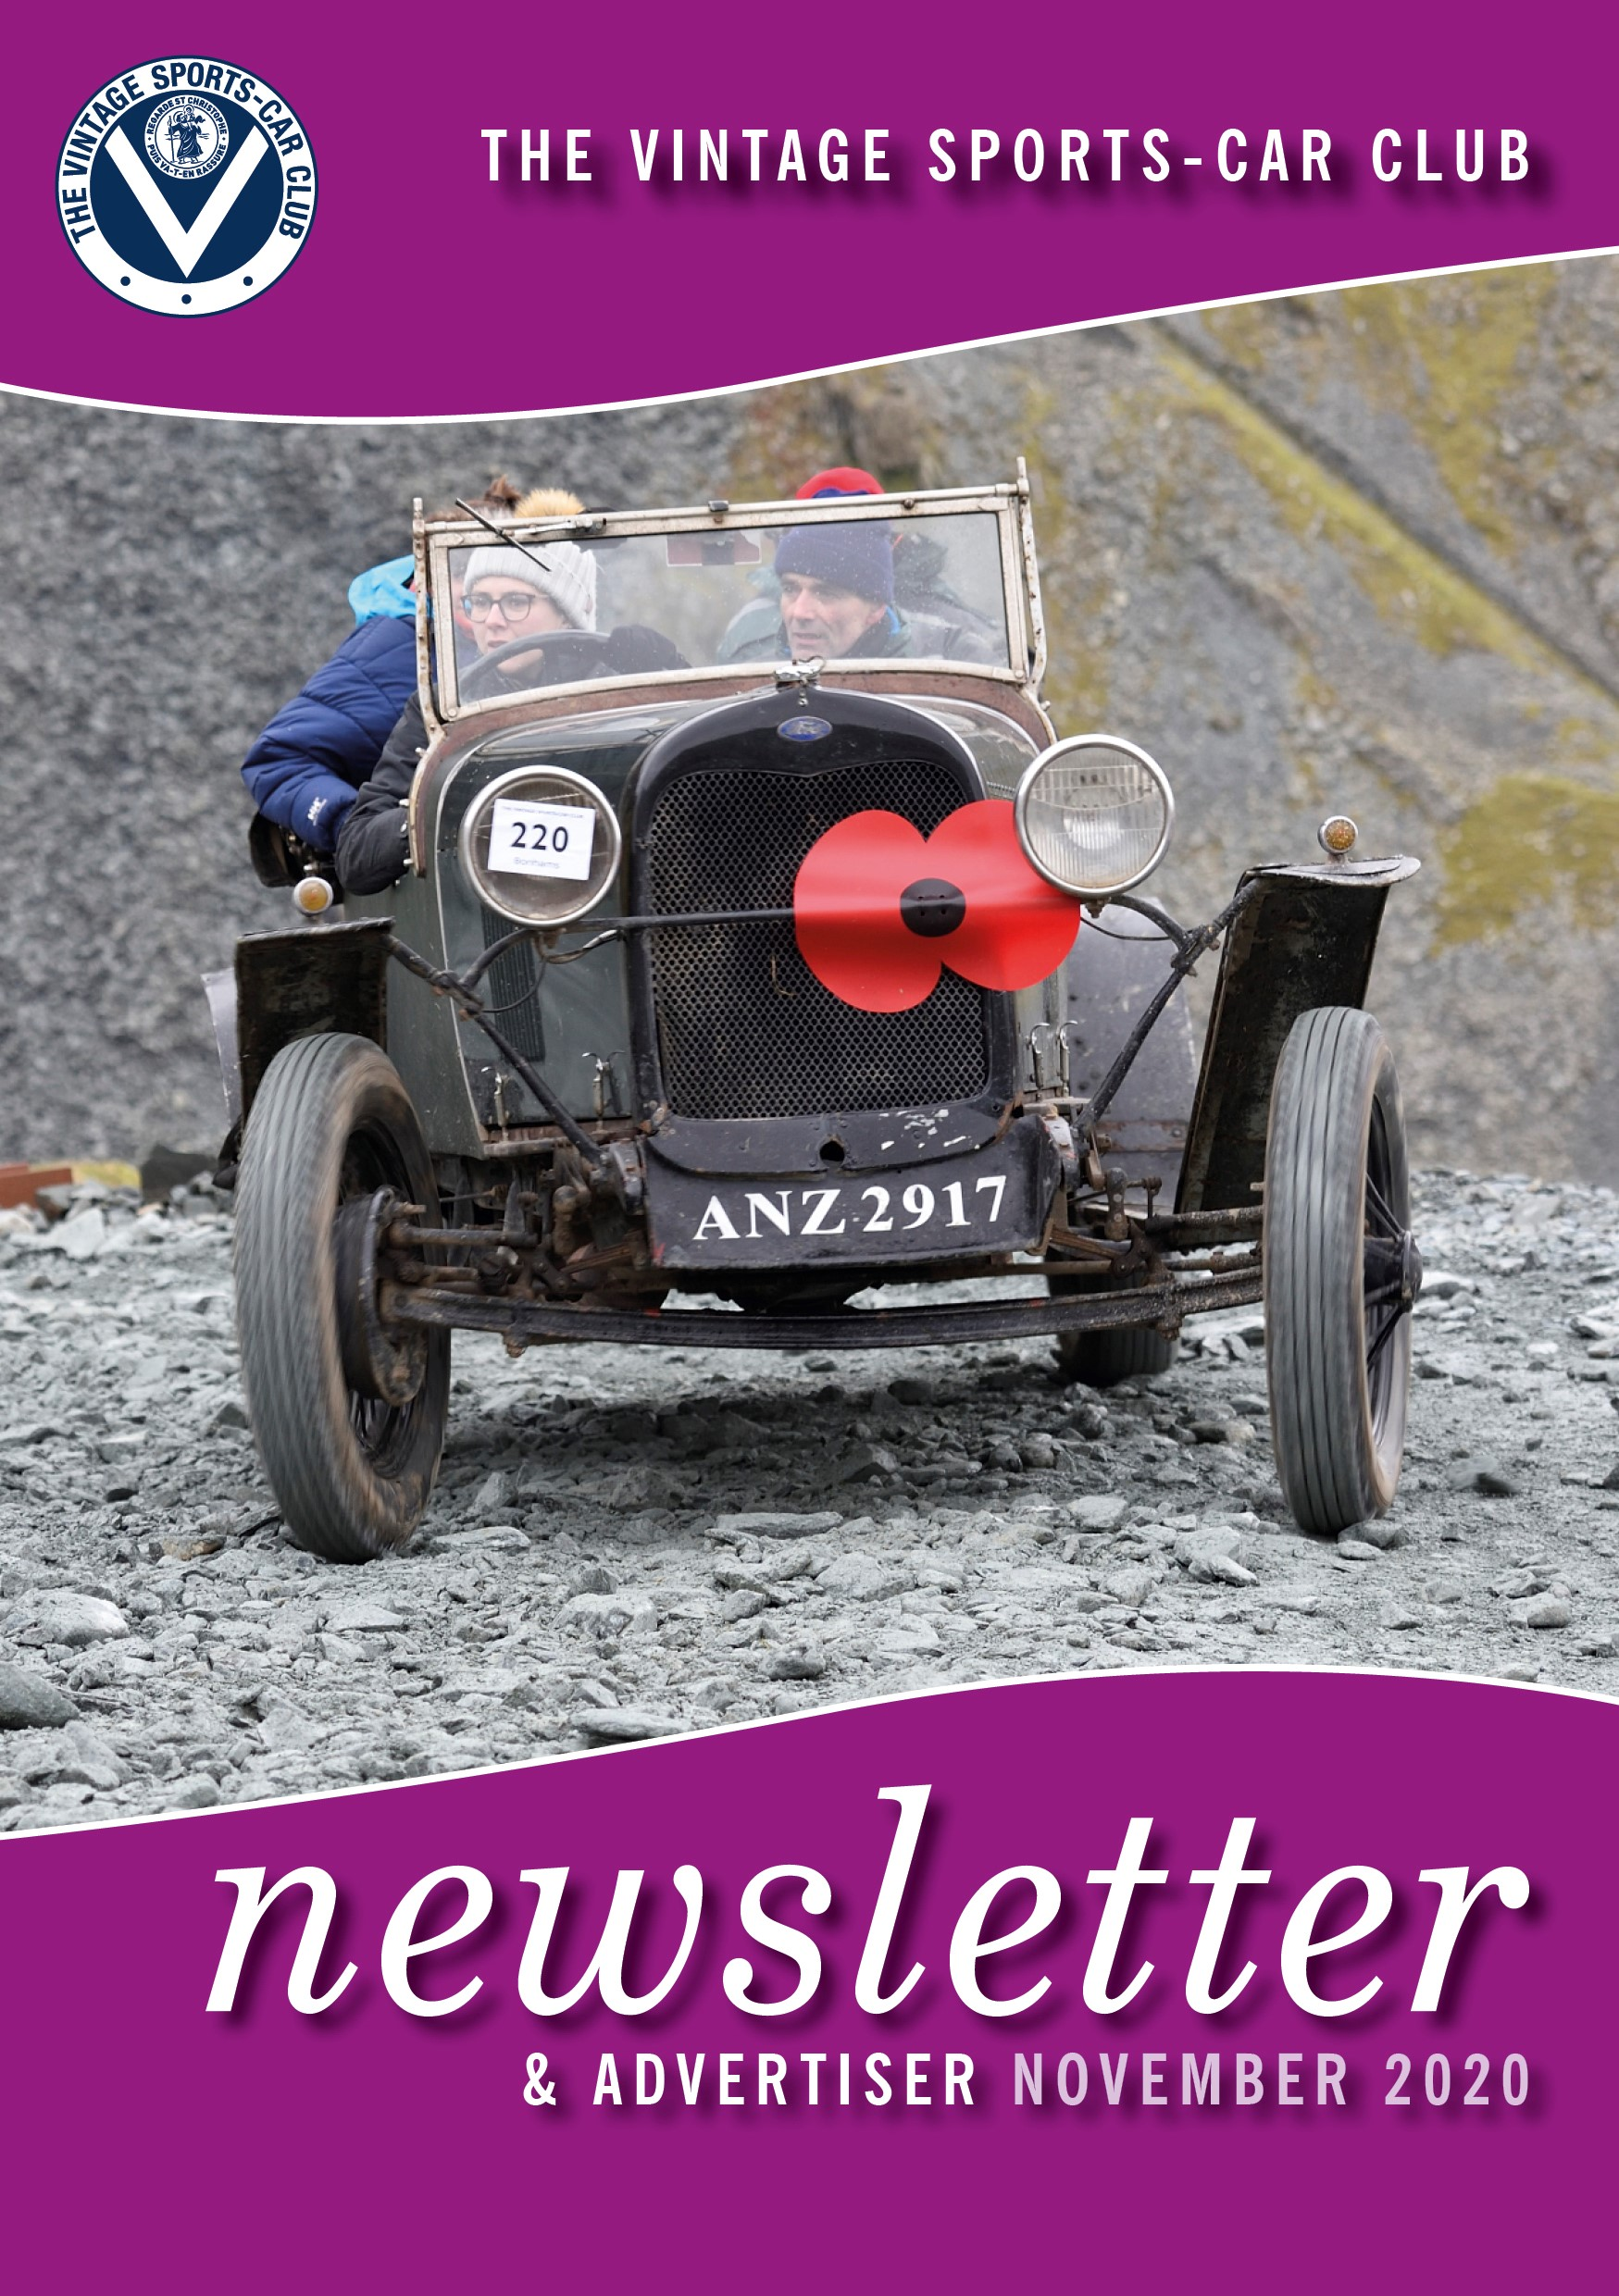 November Newsletter Now Available